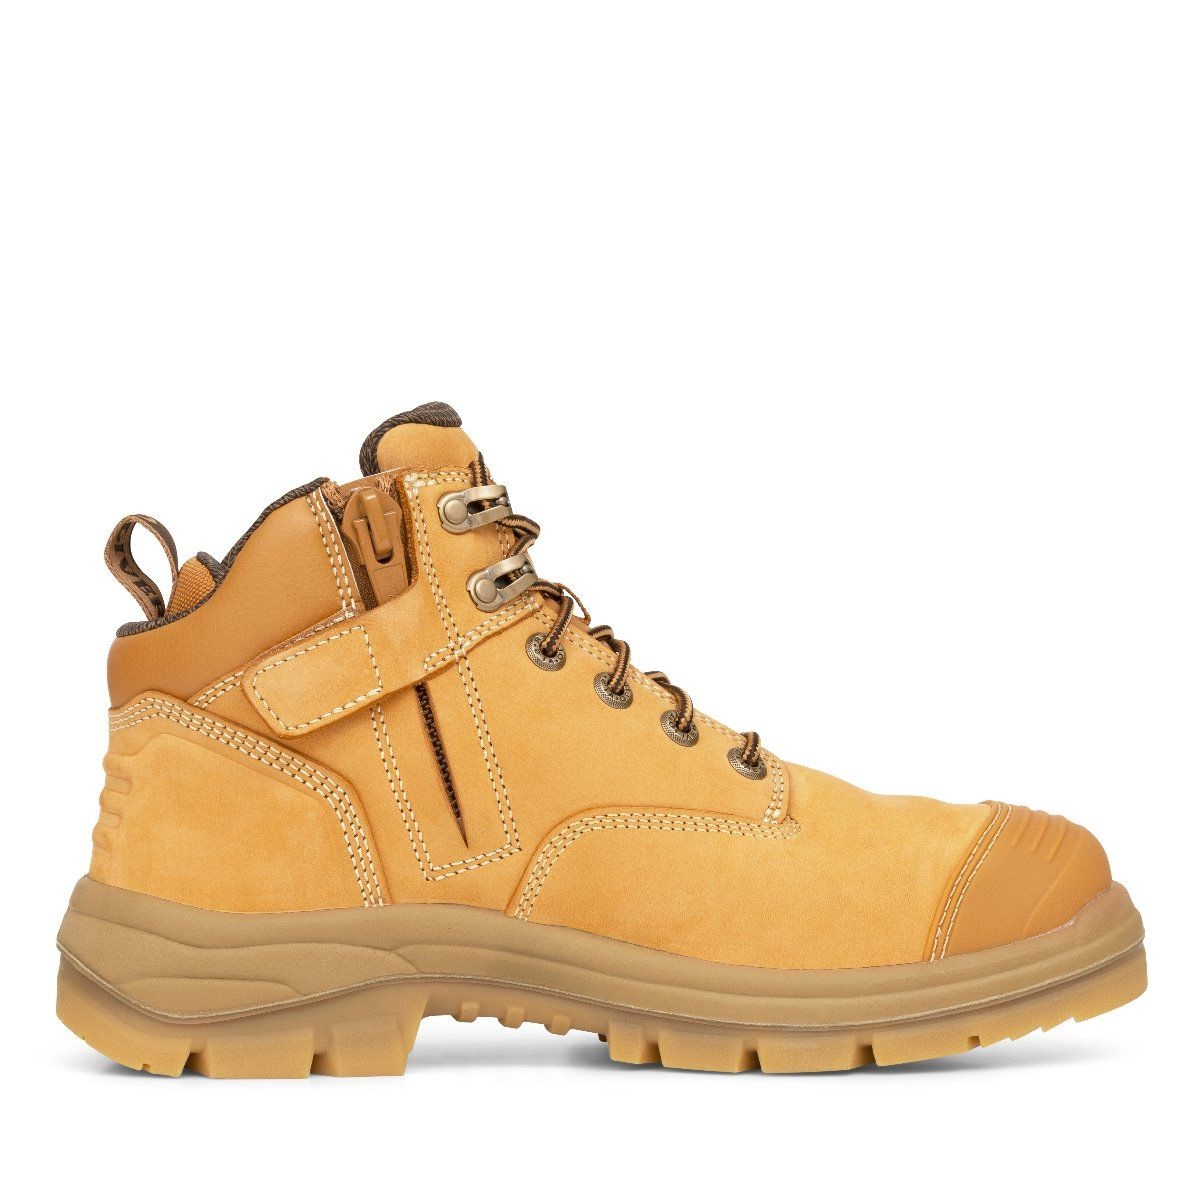 55-330z_oliver_at_55_series__130mm_wheat_zip_side_lace_up_hiker_left_hr